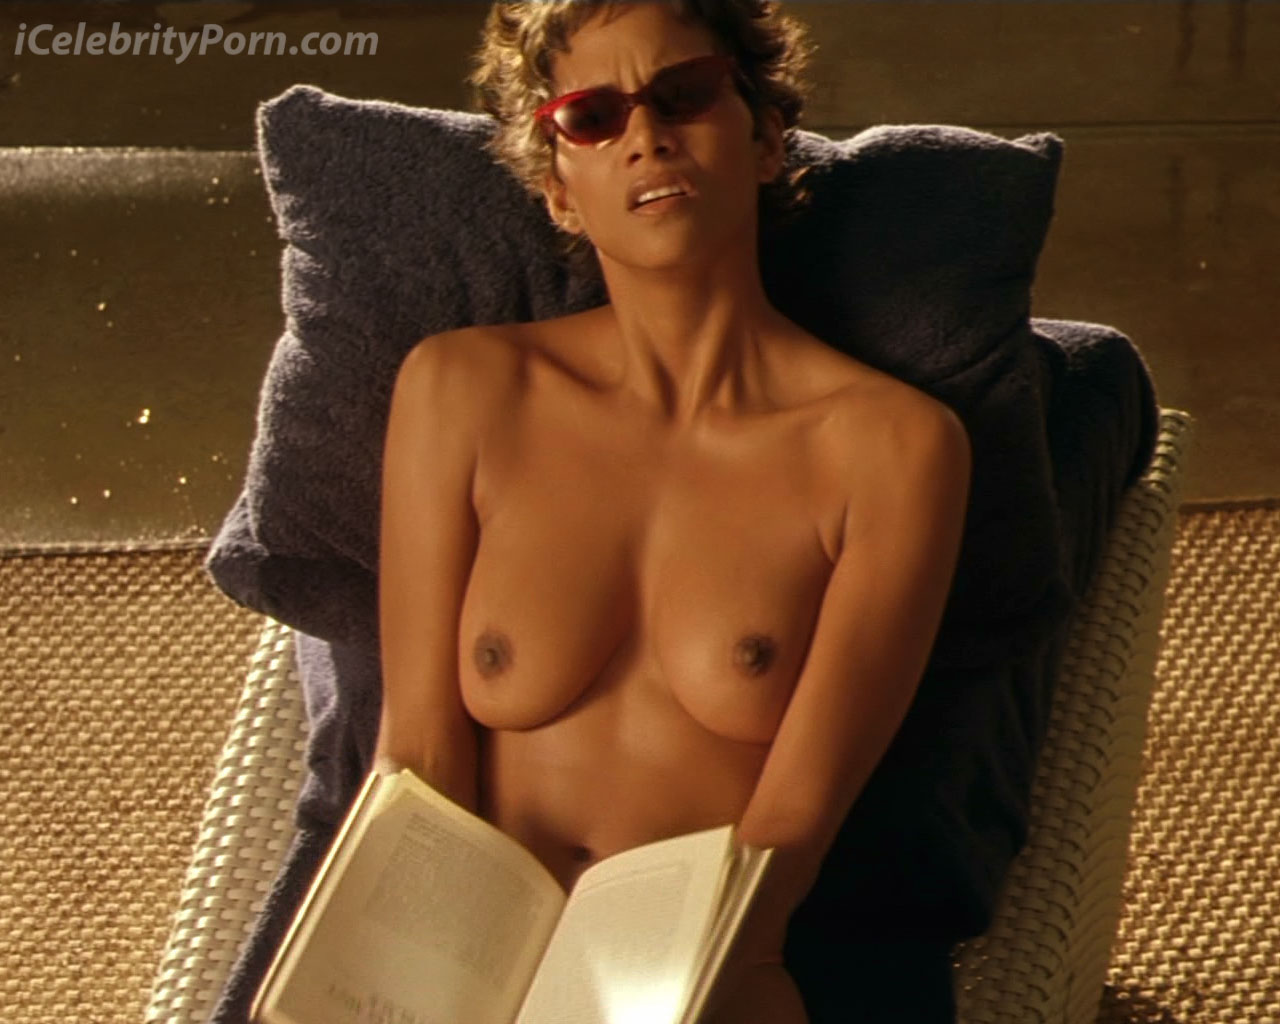 Halle Berry Xxx Desnuda Fotos Porno Sex Tape-4248